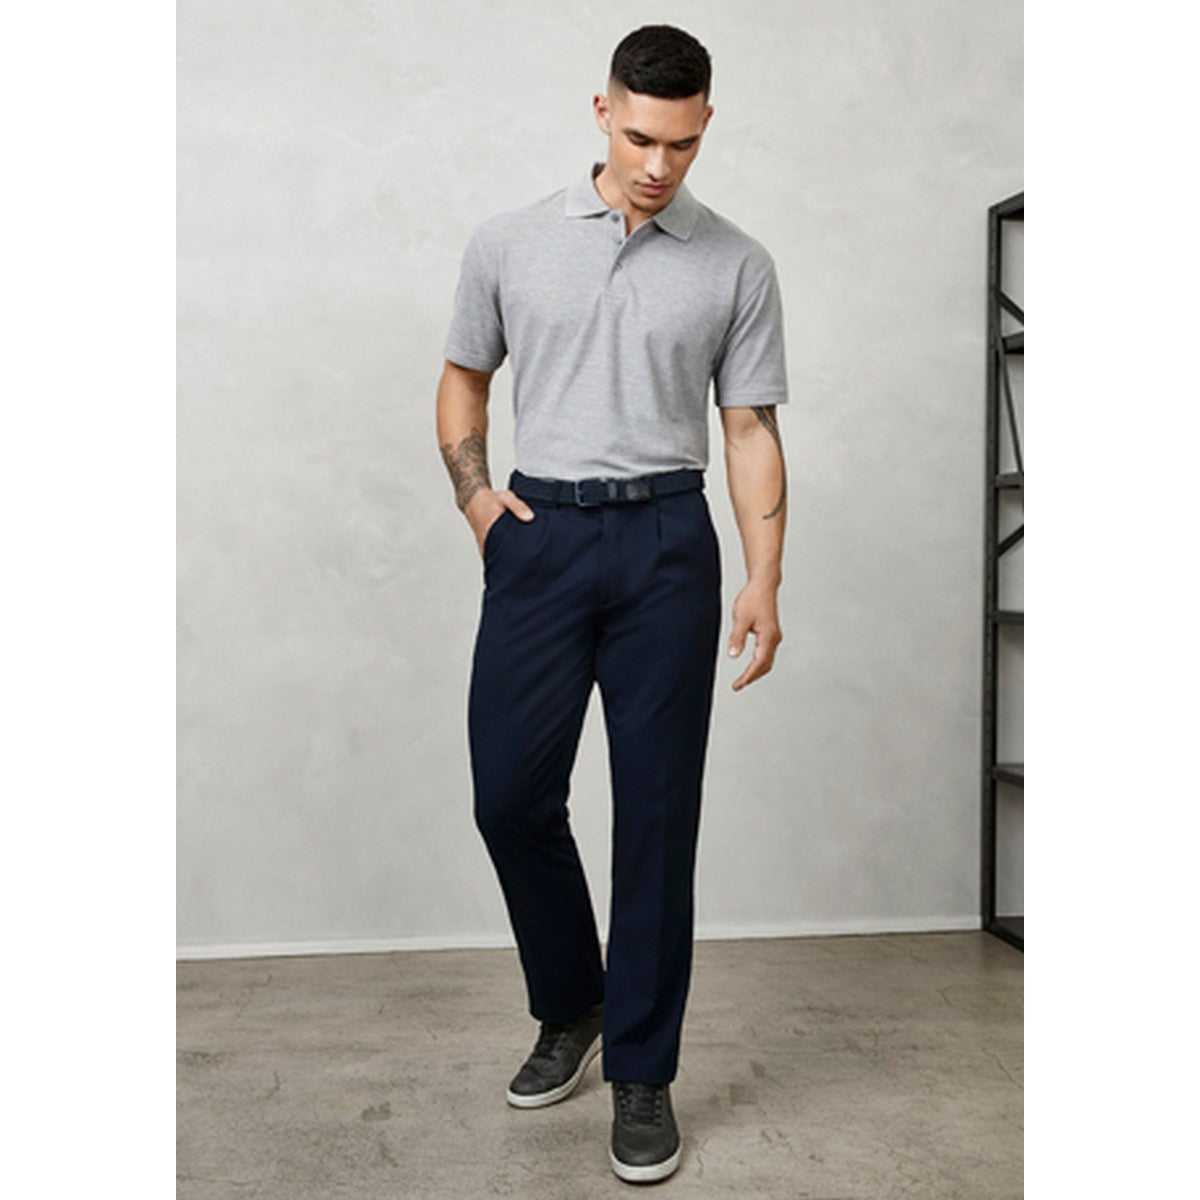 Image of Biz Collection Detroit Pants - Stout